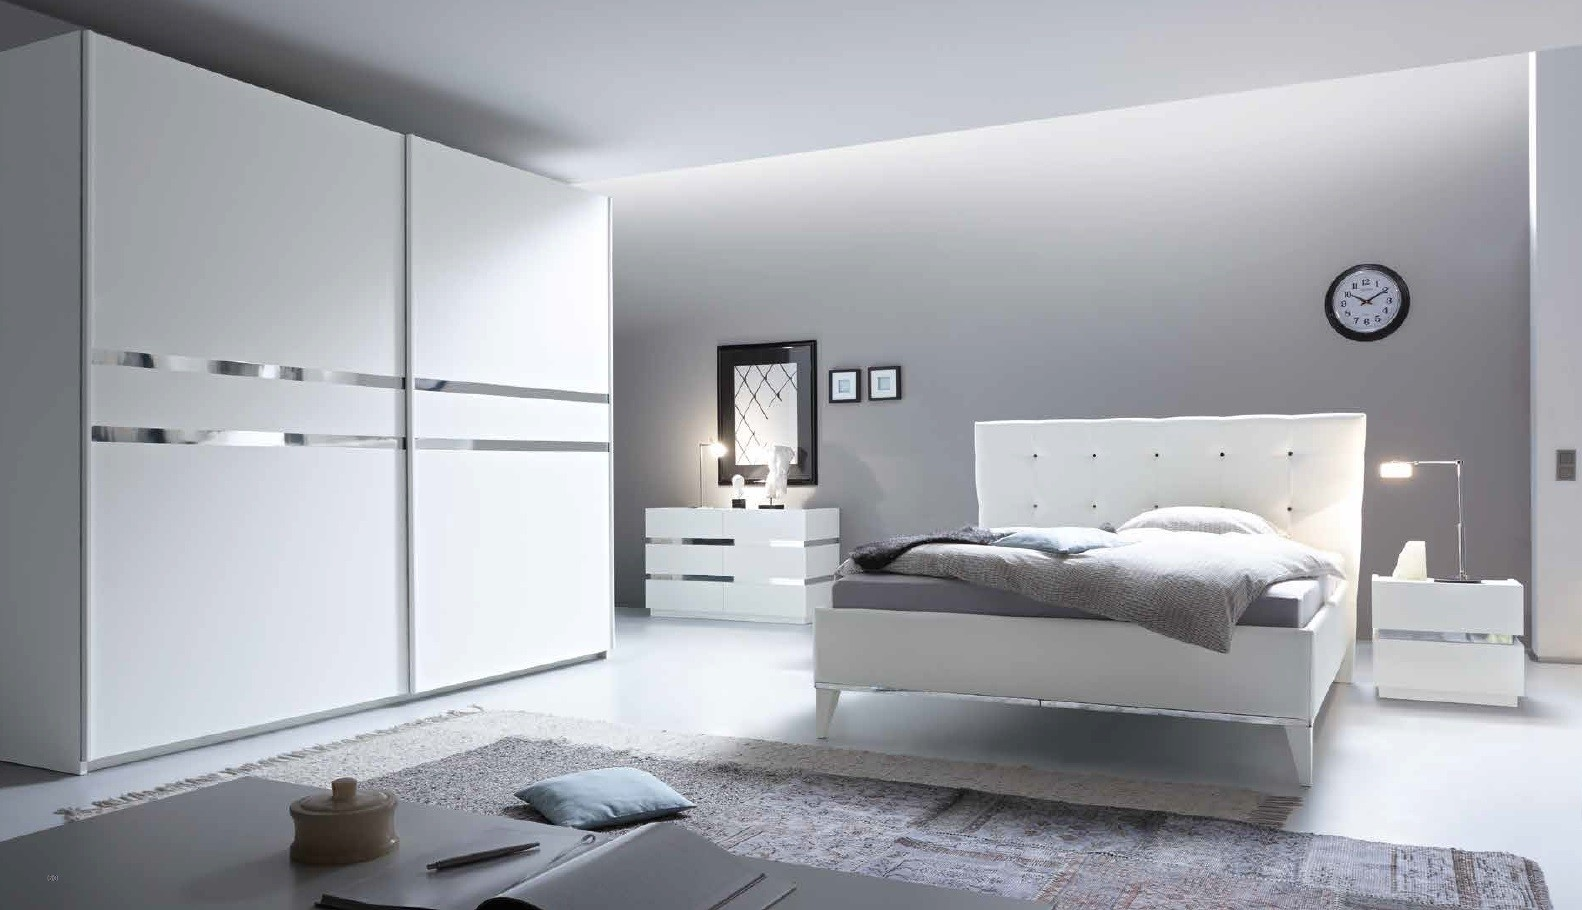 Beautiful chambre a coucher complete 2107 photos design for Chambre complete adulte led